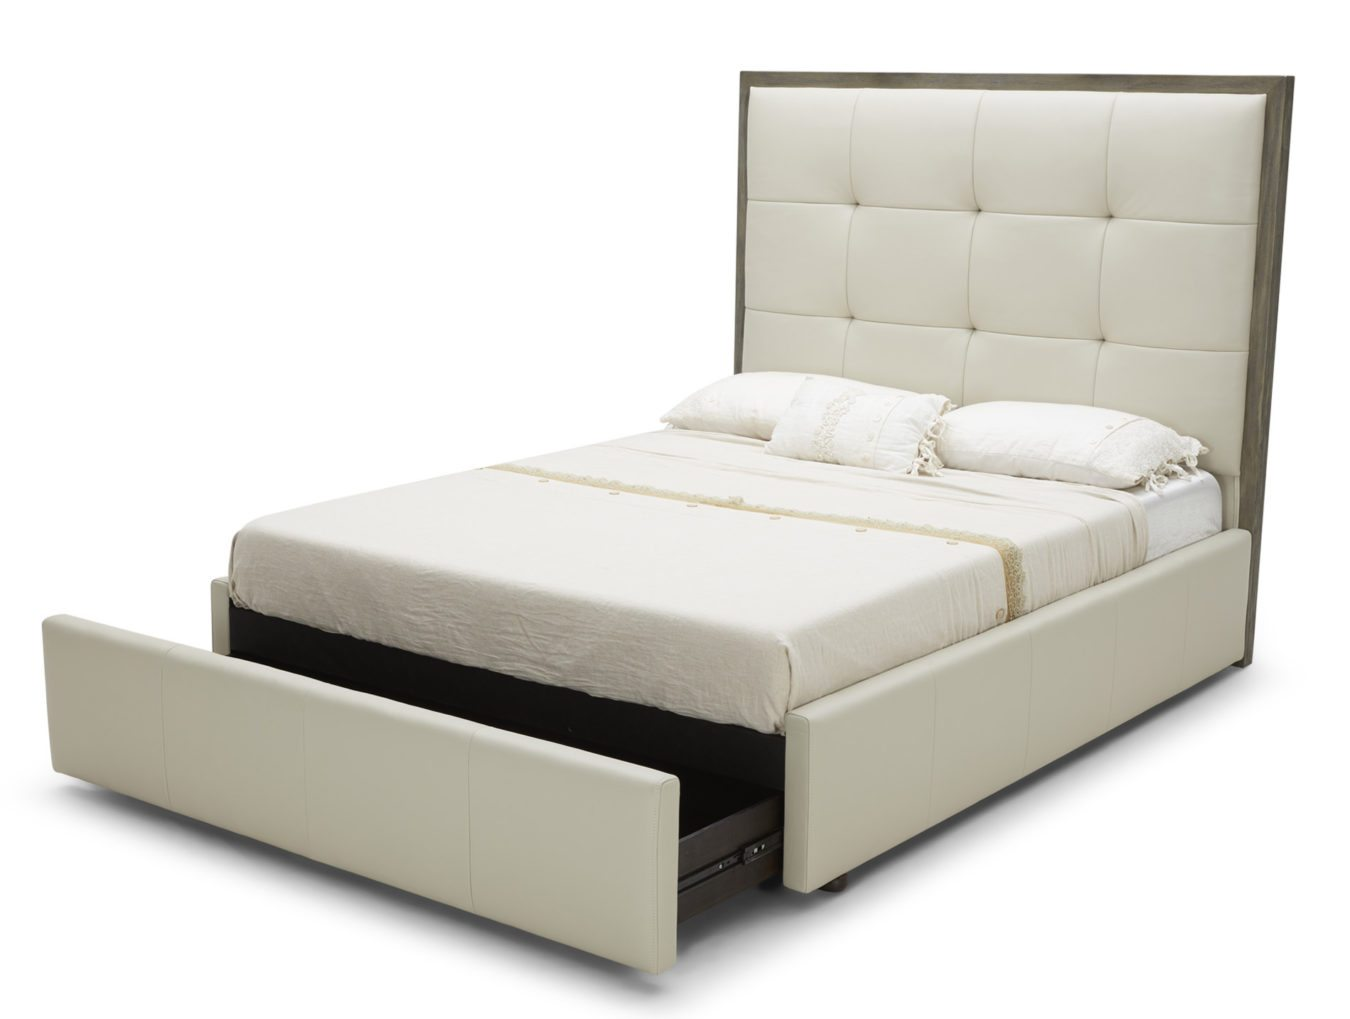 Kolekted Home Westside Storage Bed Horizon Home Furniture